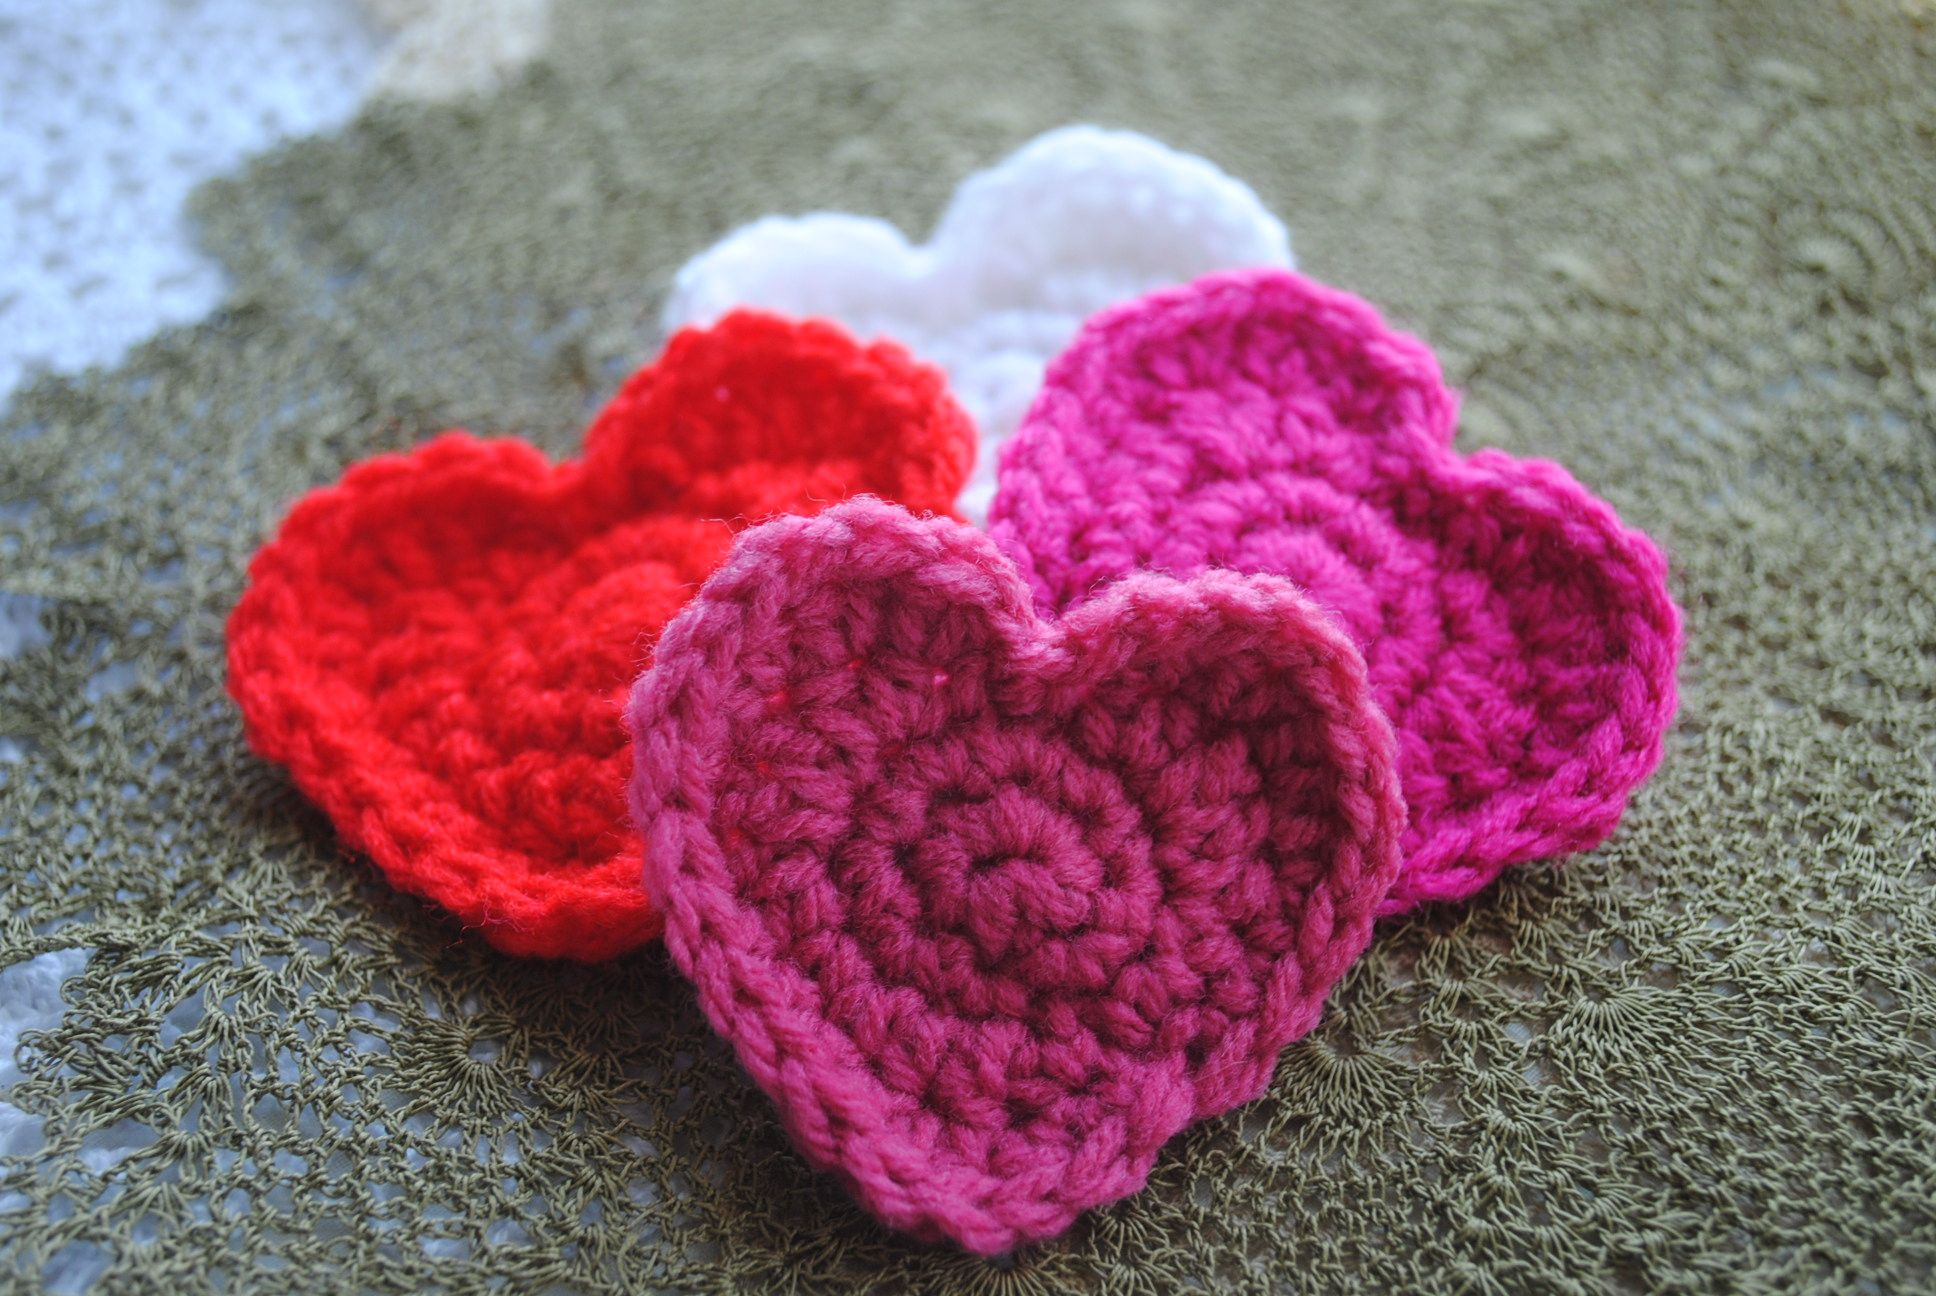 Free crochet heart pattern on cre8tion crochet other heart free crochet heart pattern on cre8tion crochet other heart patterns also available here bankloansurffo Images